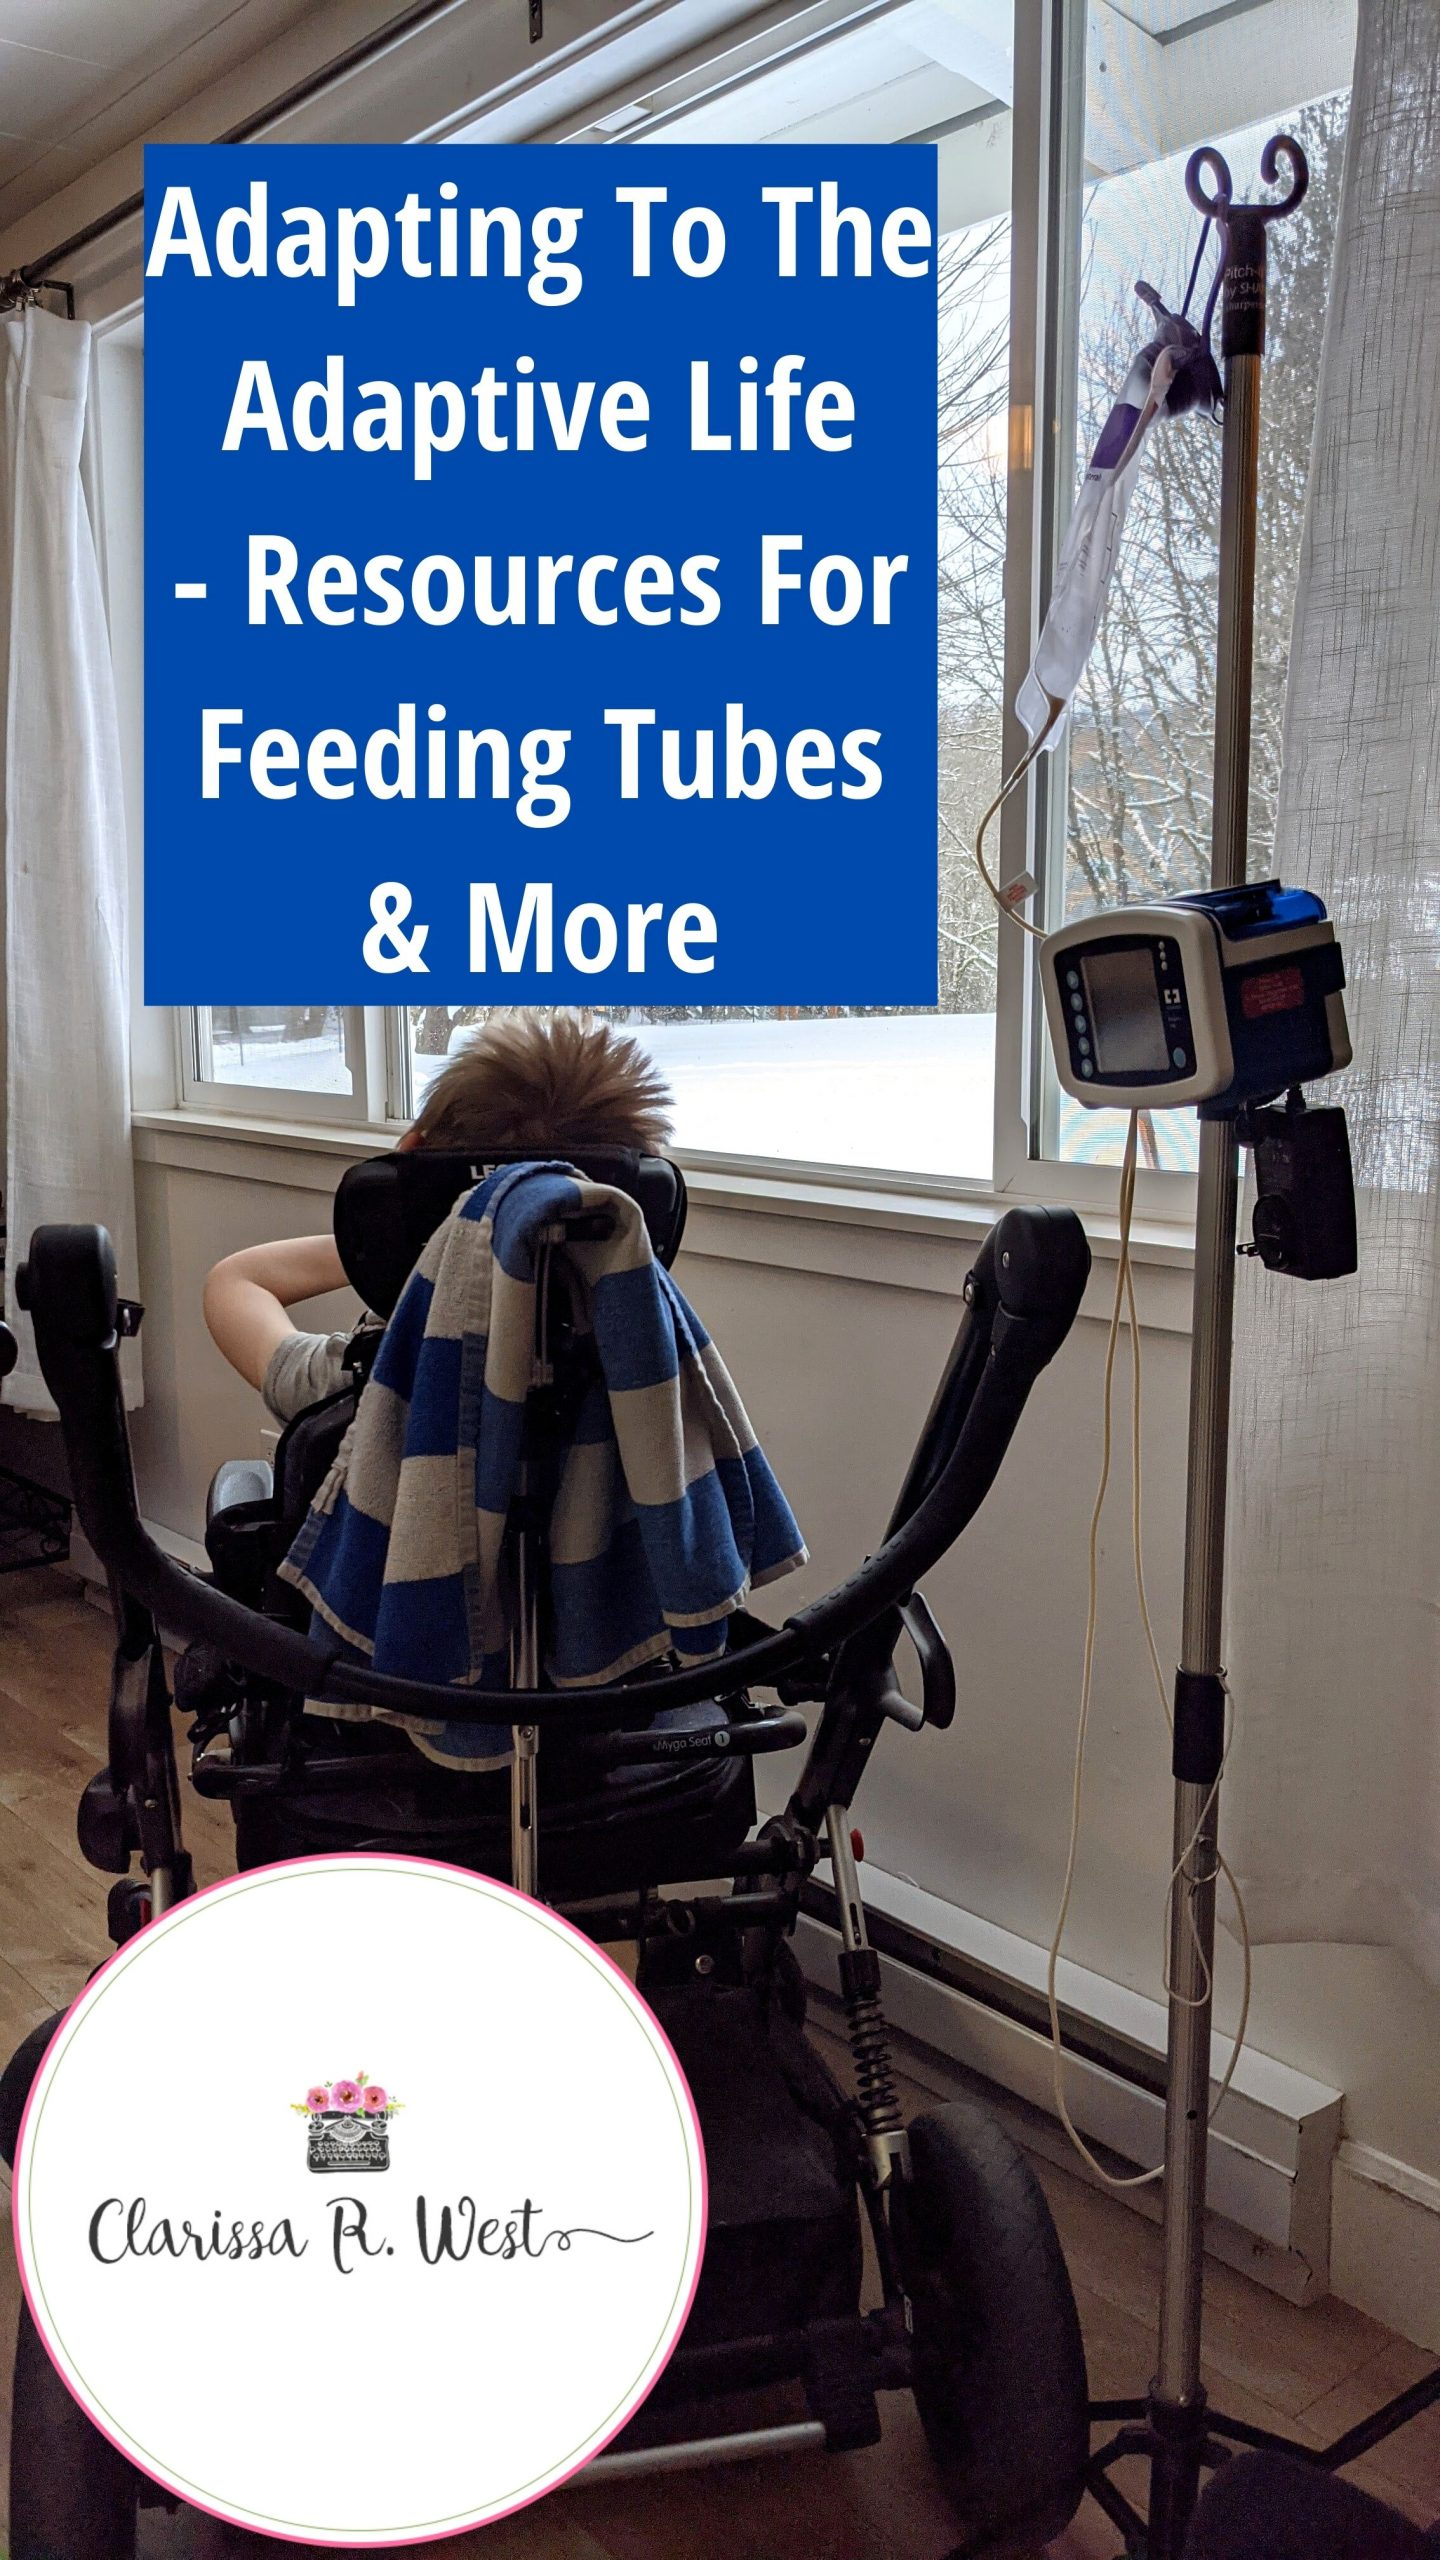 Adapting To The Adaptive Life Resources For Feeding Tubes & More